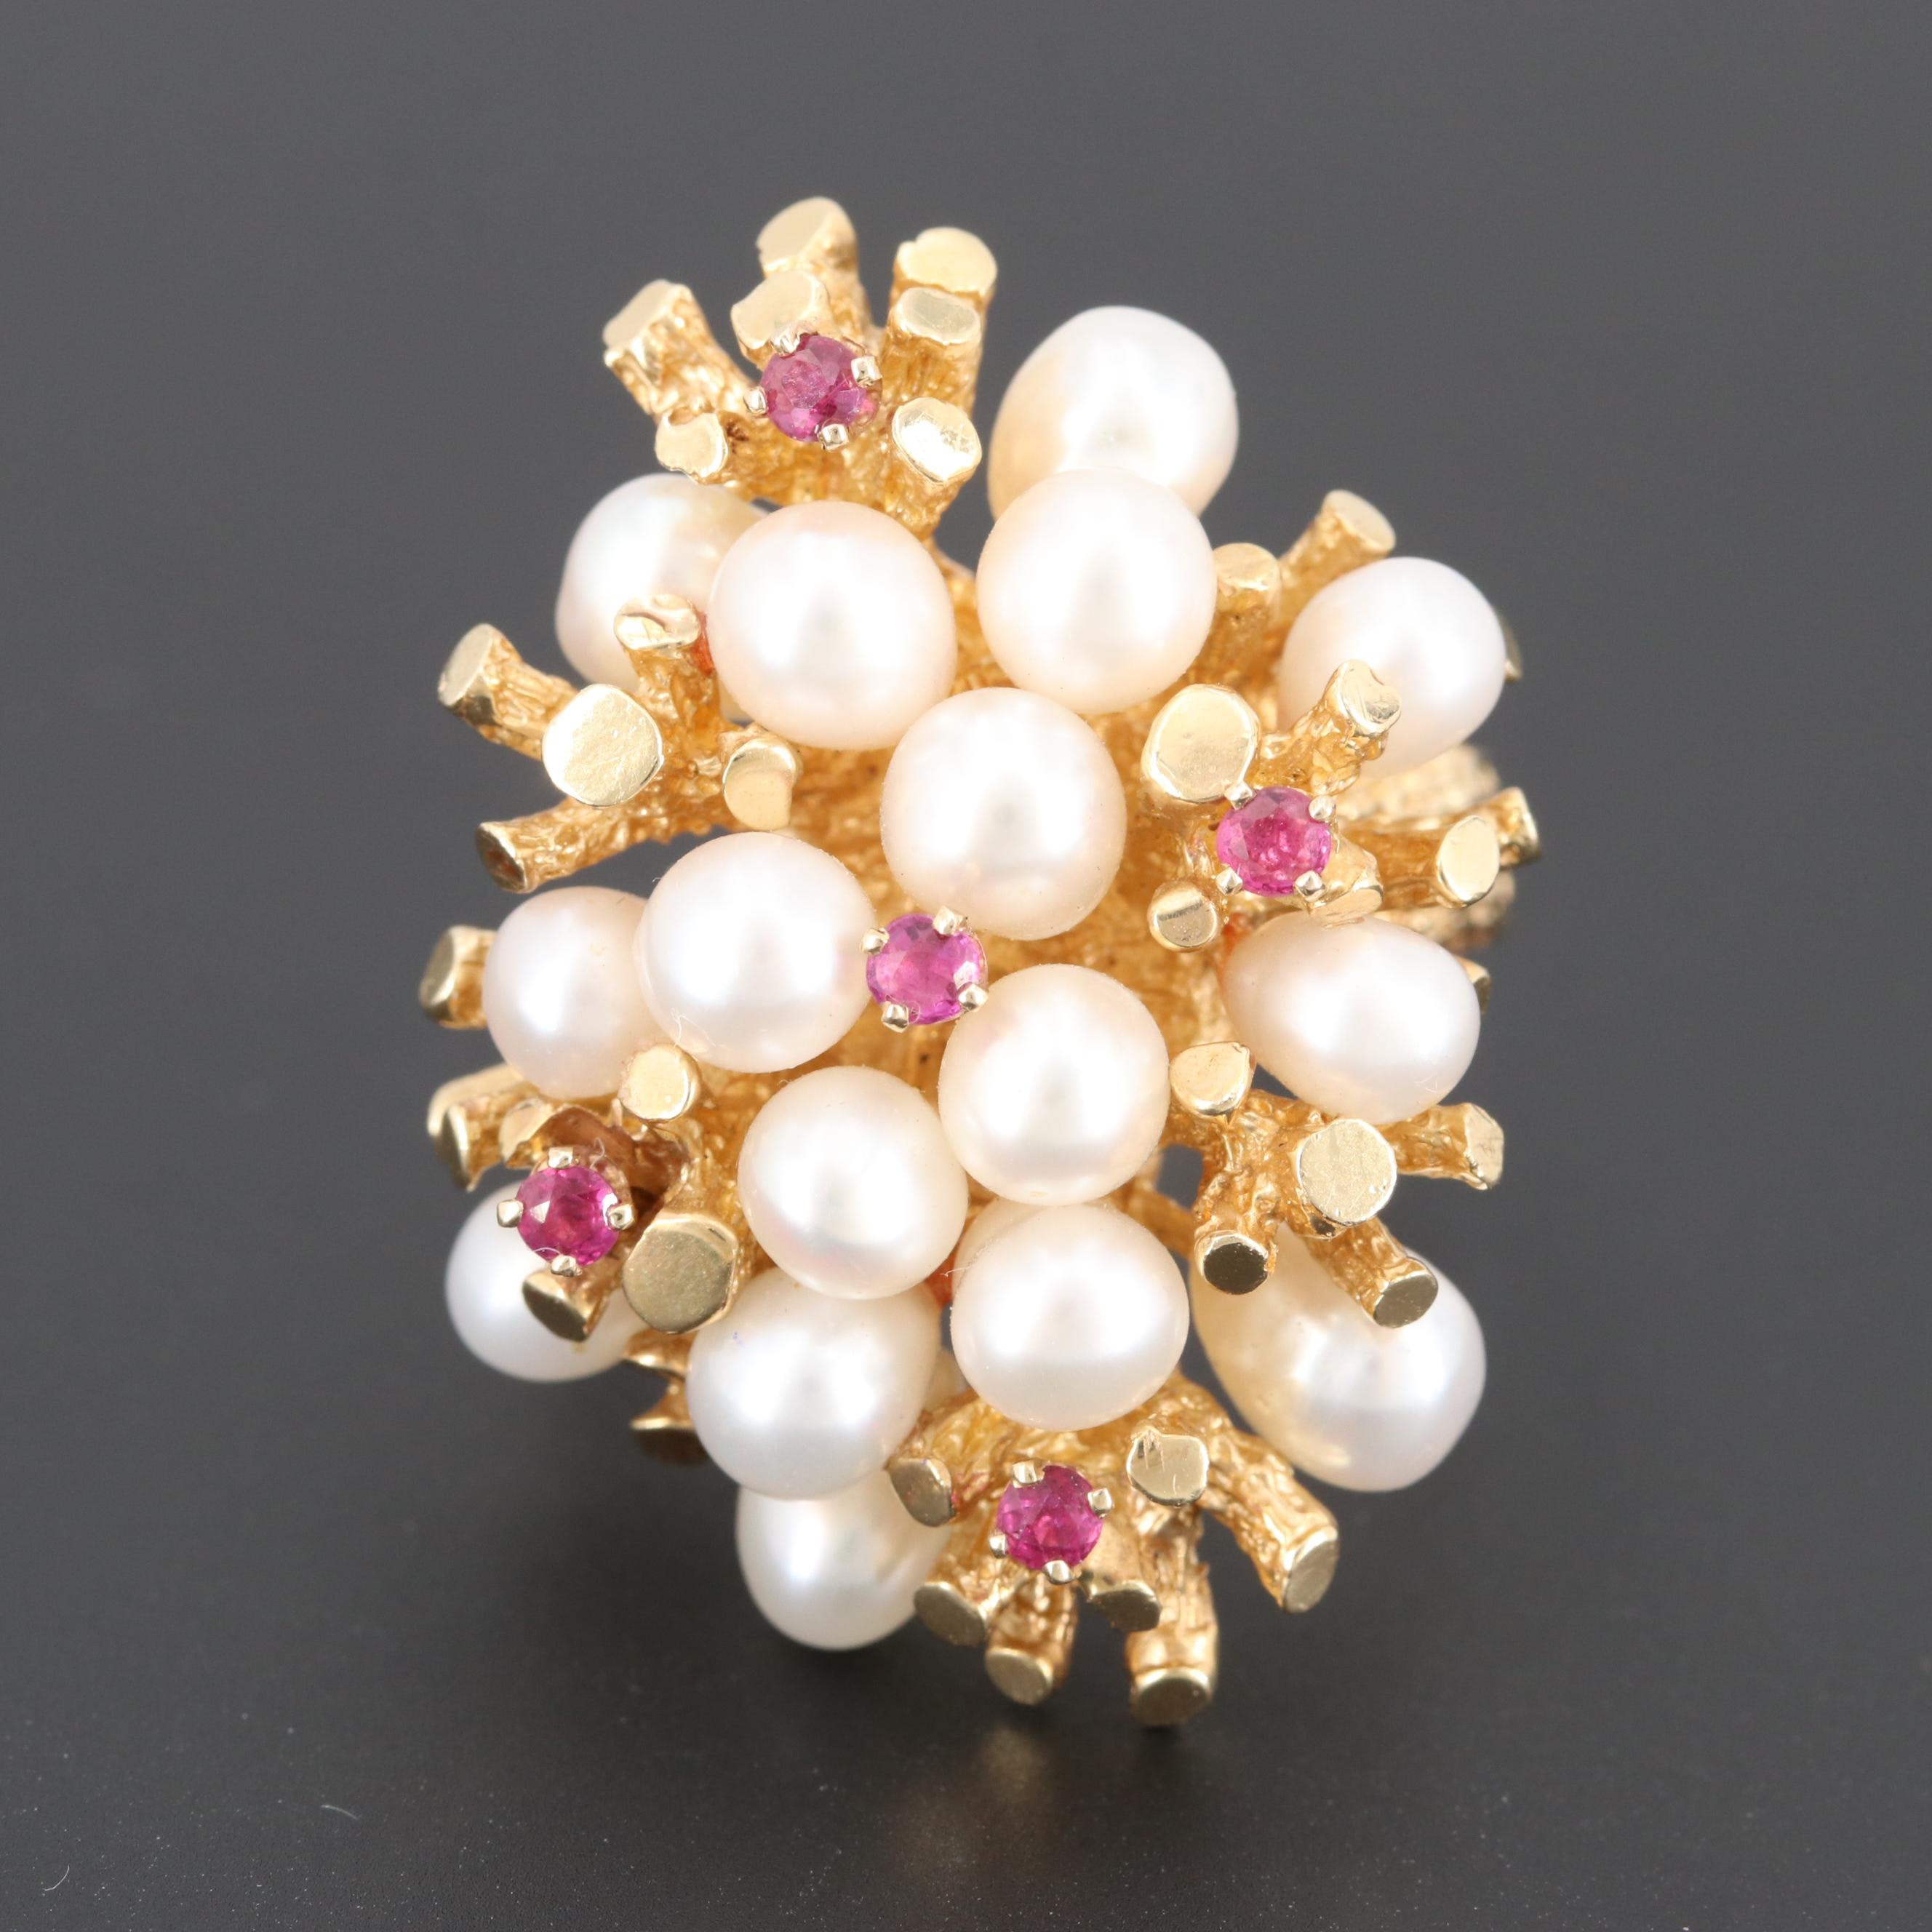 Circa 1960s 14K Yellow Gold Ruby and Cultured Pearl Biomorphic Cluster Ring